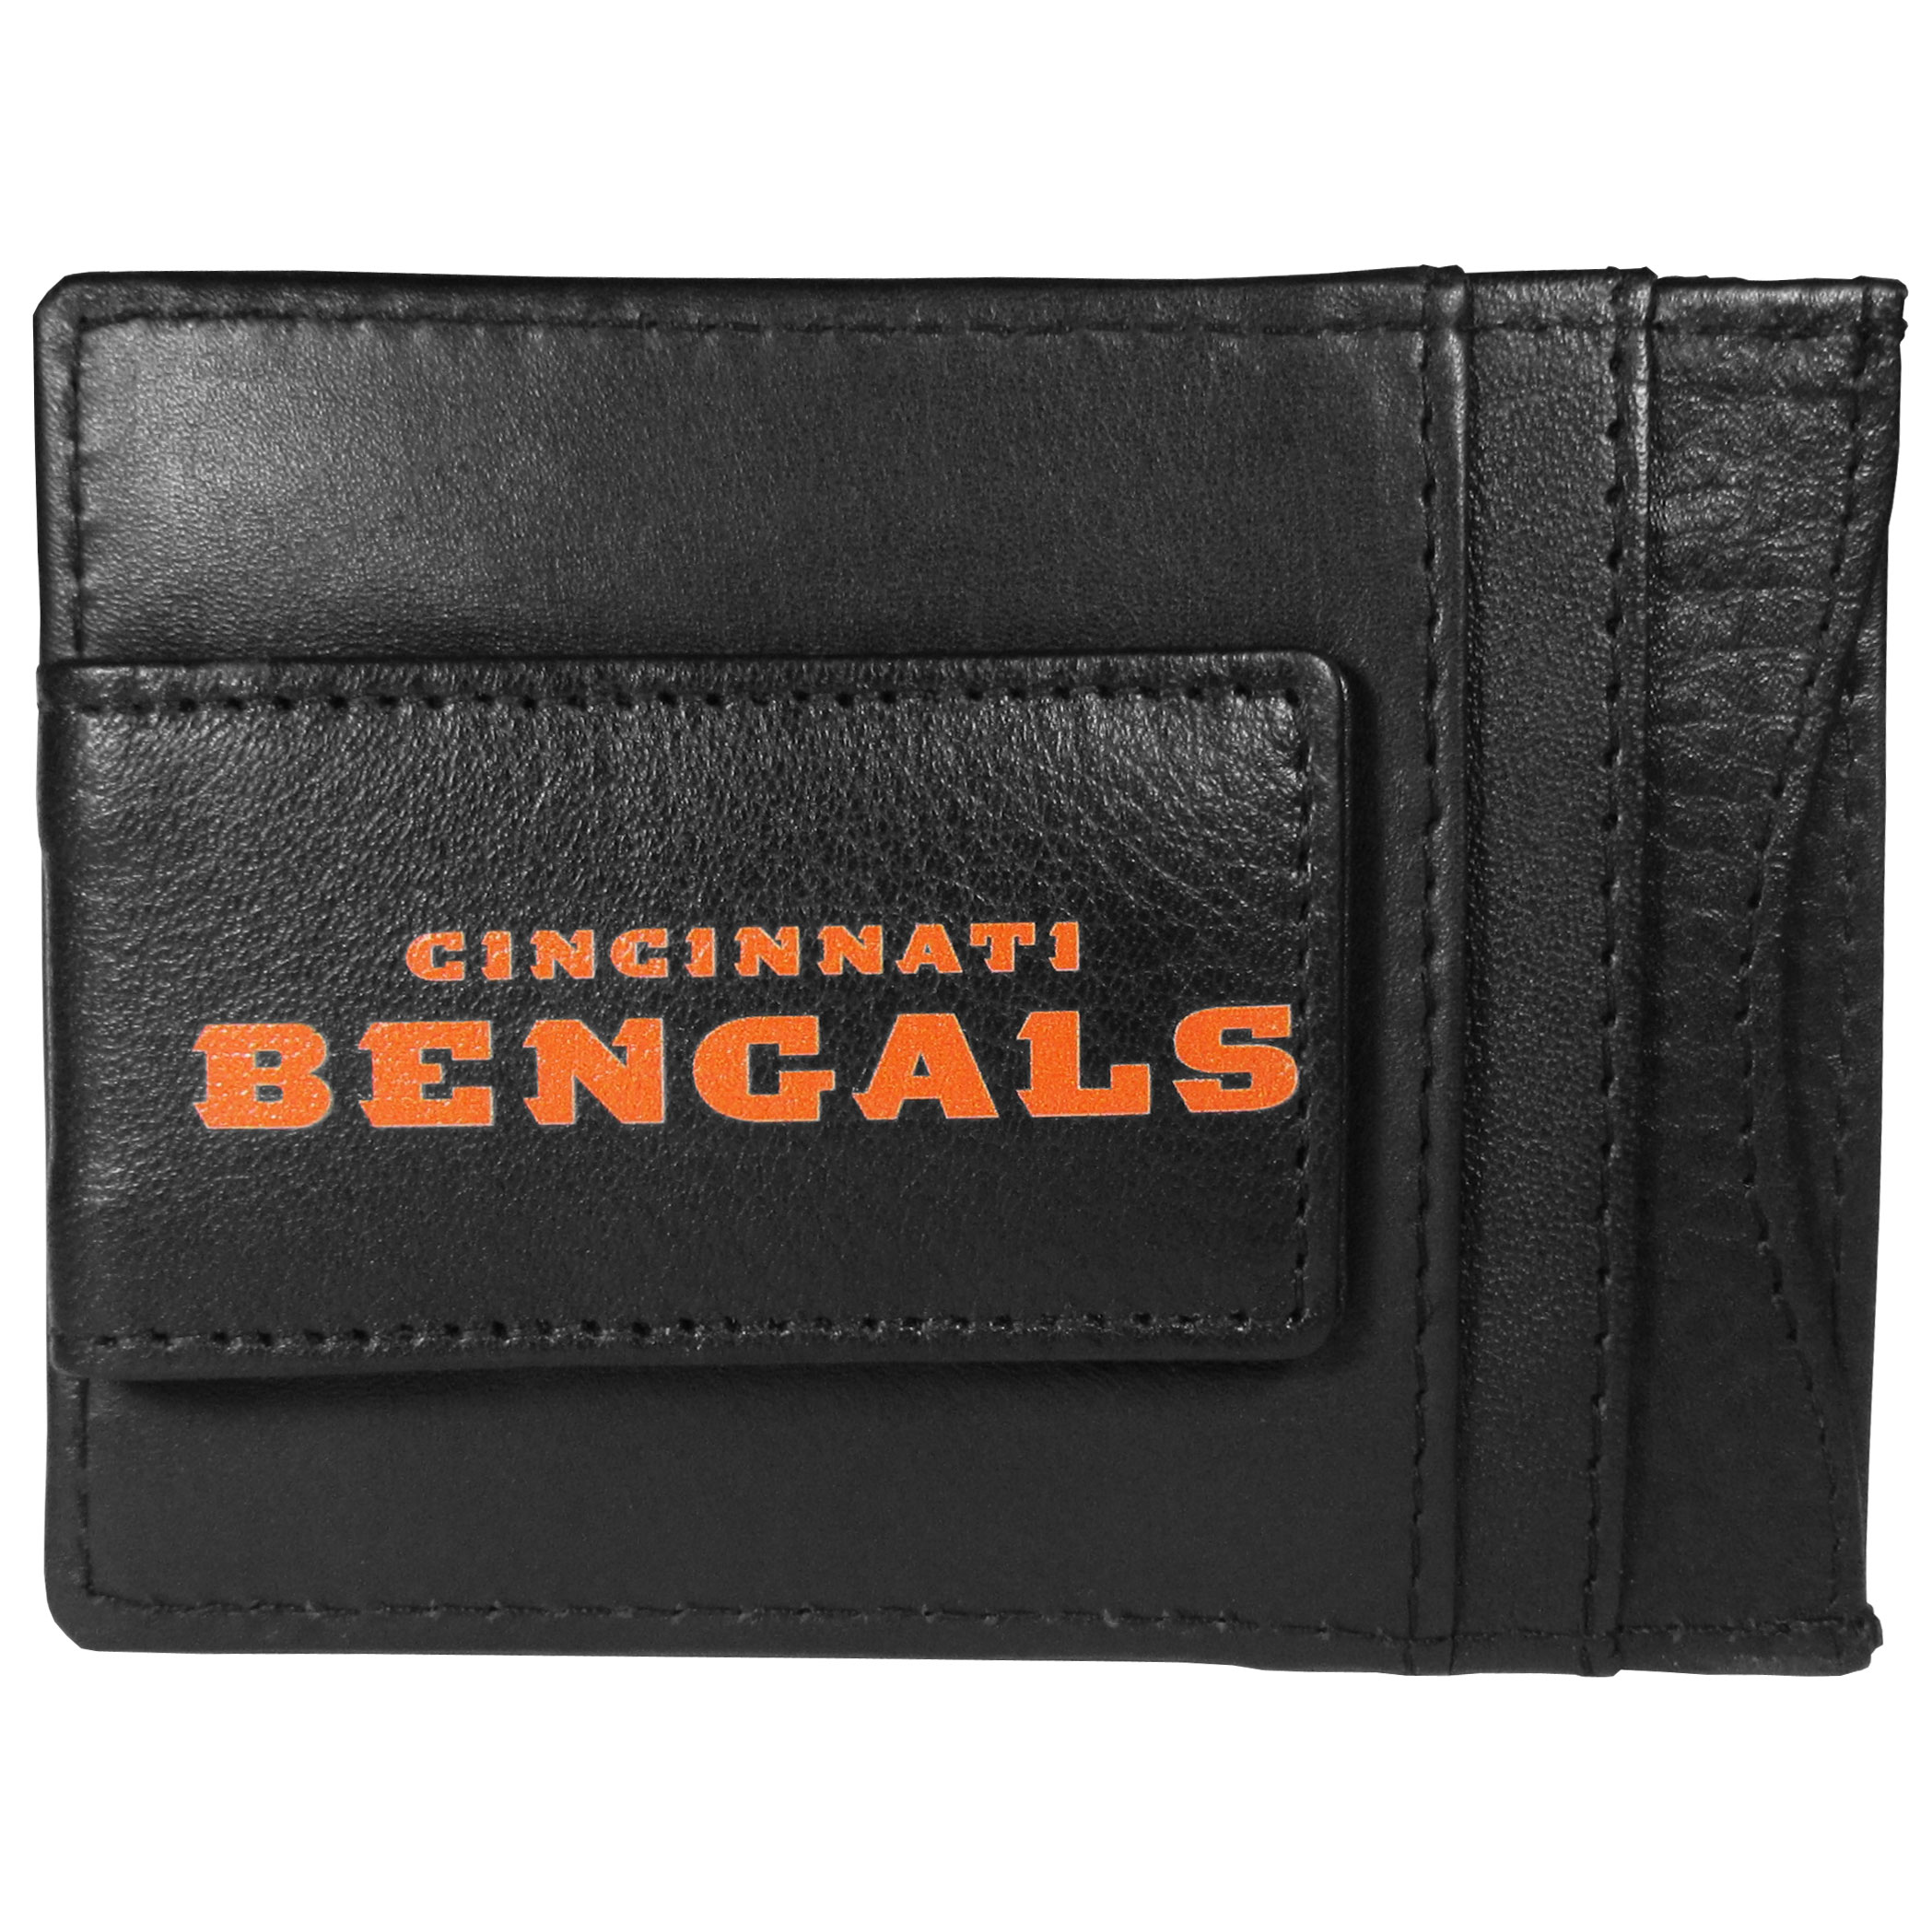 Cincinnati Bengals Logo Leather Cash and Cardholder - This super slim leather wallet lets you have all the benefits of a money clip while keeping the organization of a wallet. On one side of this front pocket wallet there is a strong, magnetic money clip to keep your cash easily accessible and the?Cincinnati Bengals team logo on the front. The versatile men's accessory is a perfect addition to your fan apparel.